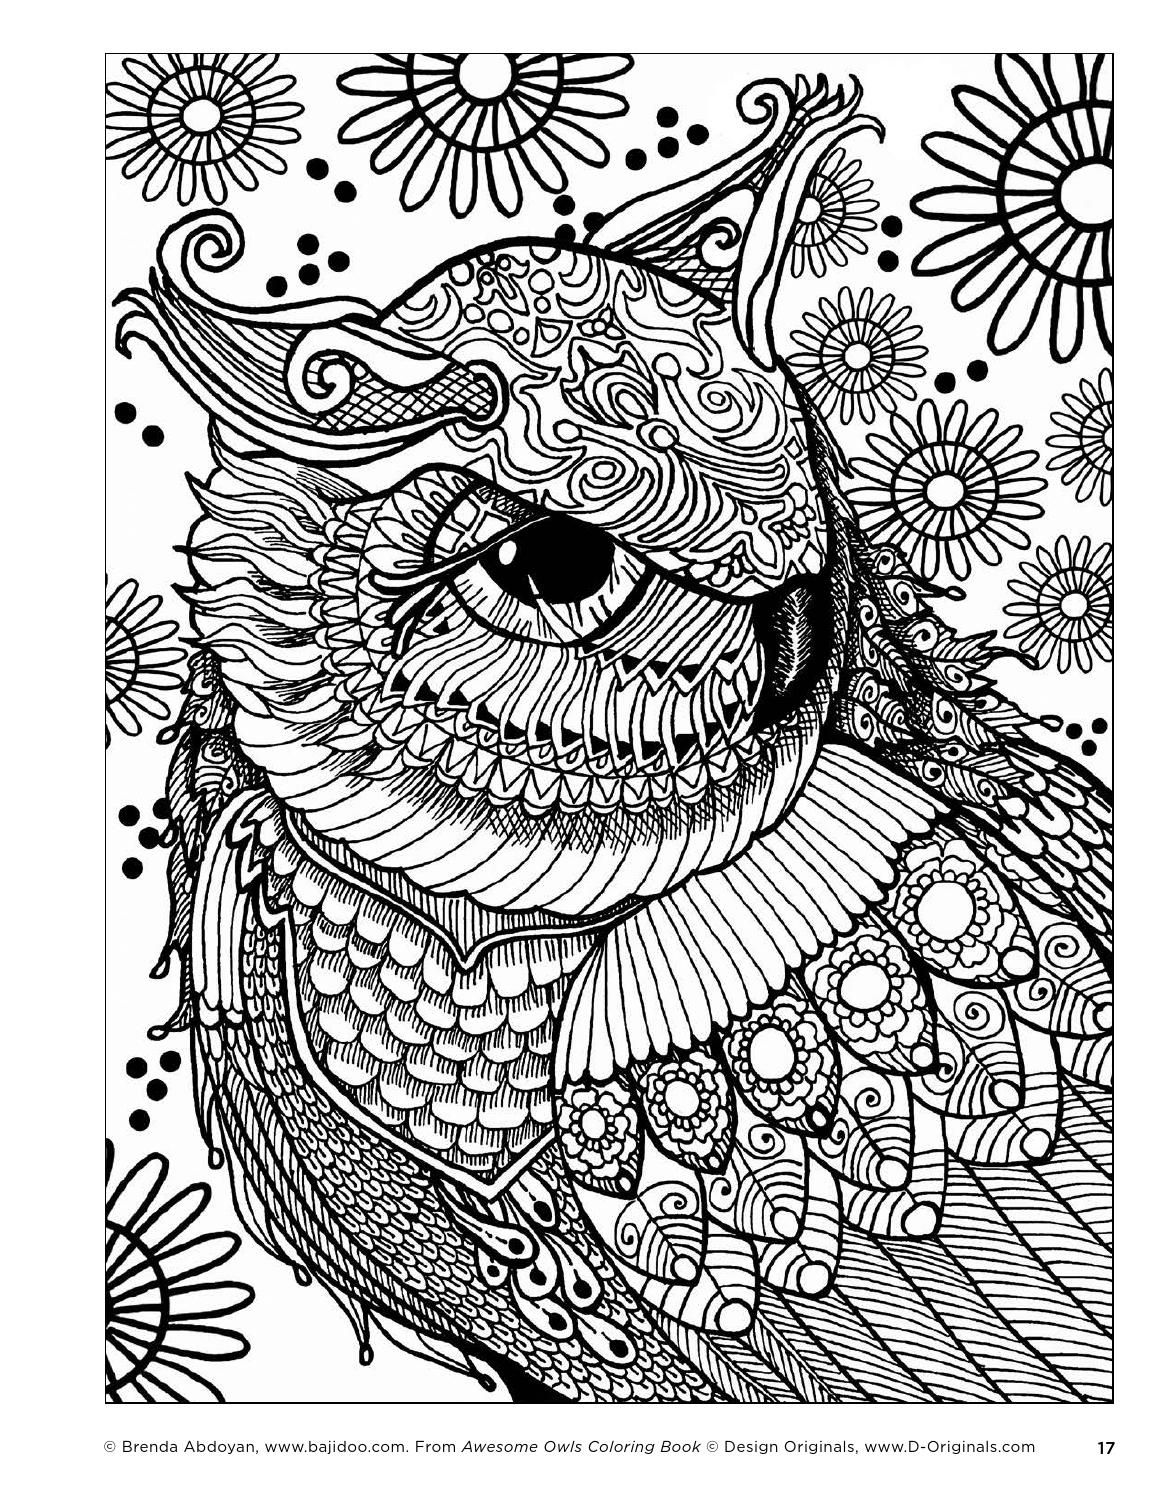 Awesome Owls Coloring Book by Fox Chapel Publishing - issuu | Búhos ...